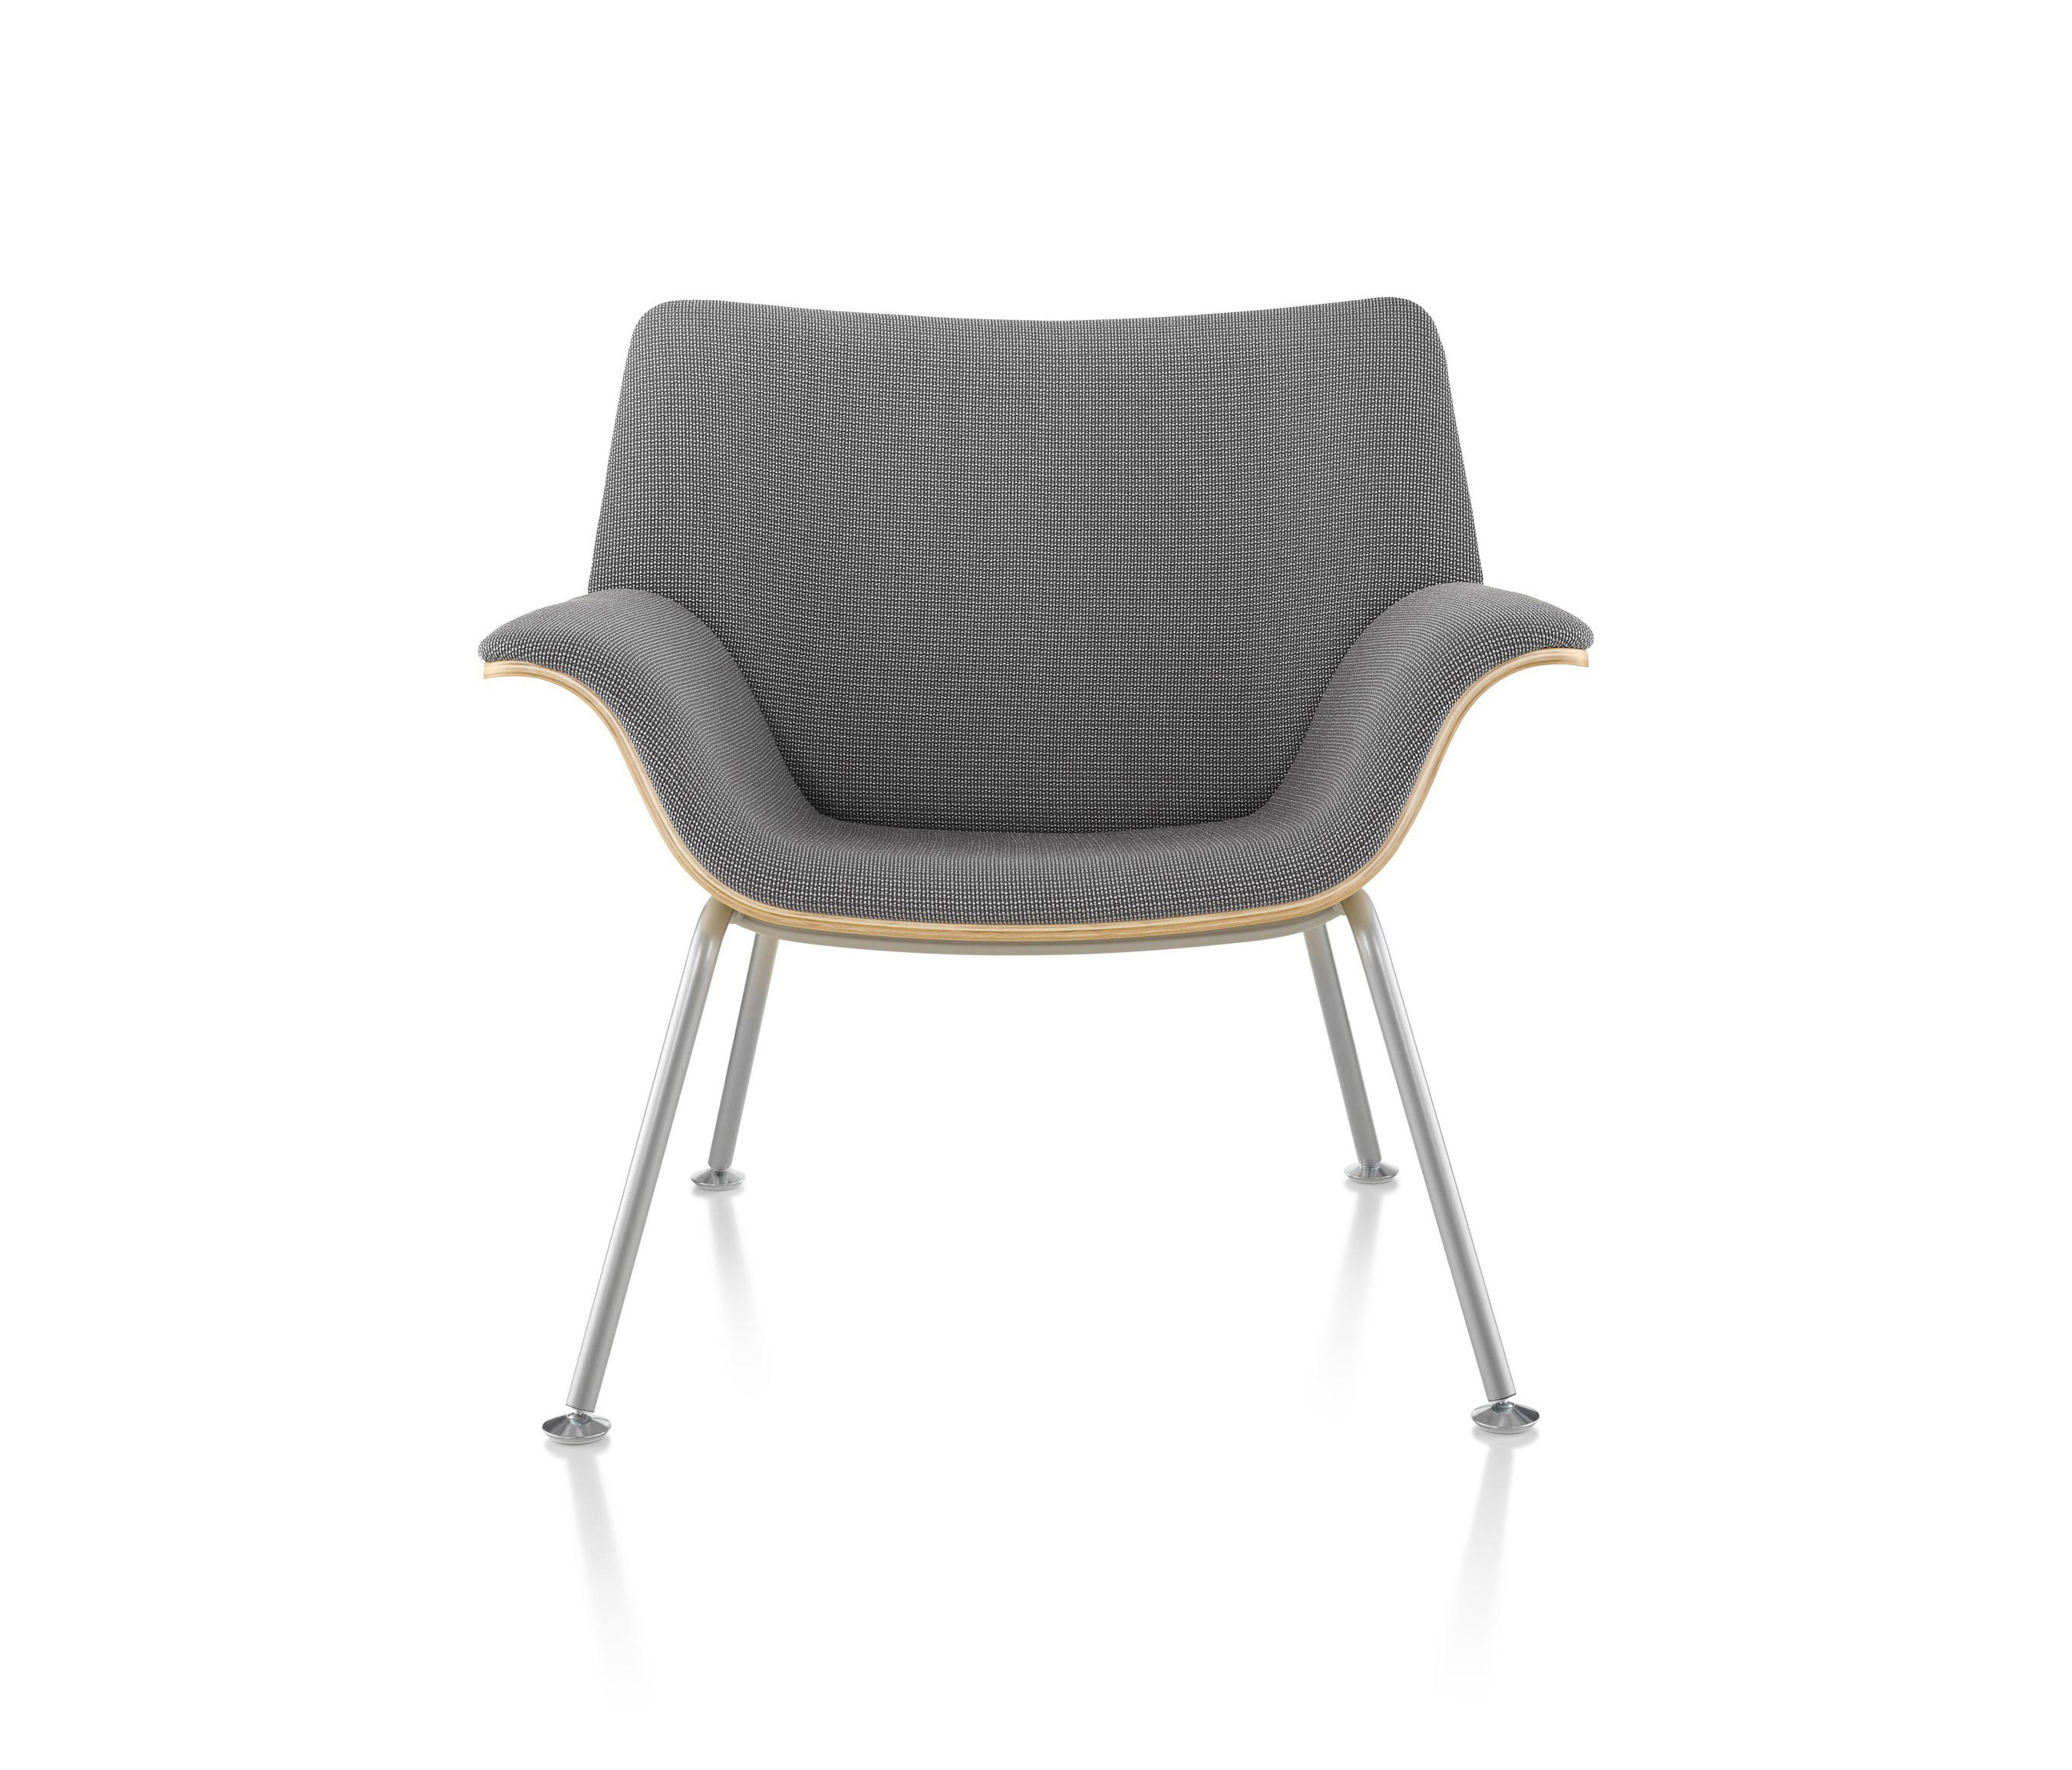 Swoop Lounge Chair Lounge chairs by Herman Miller